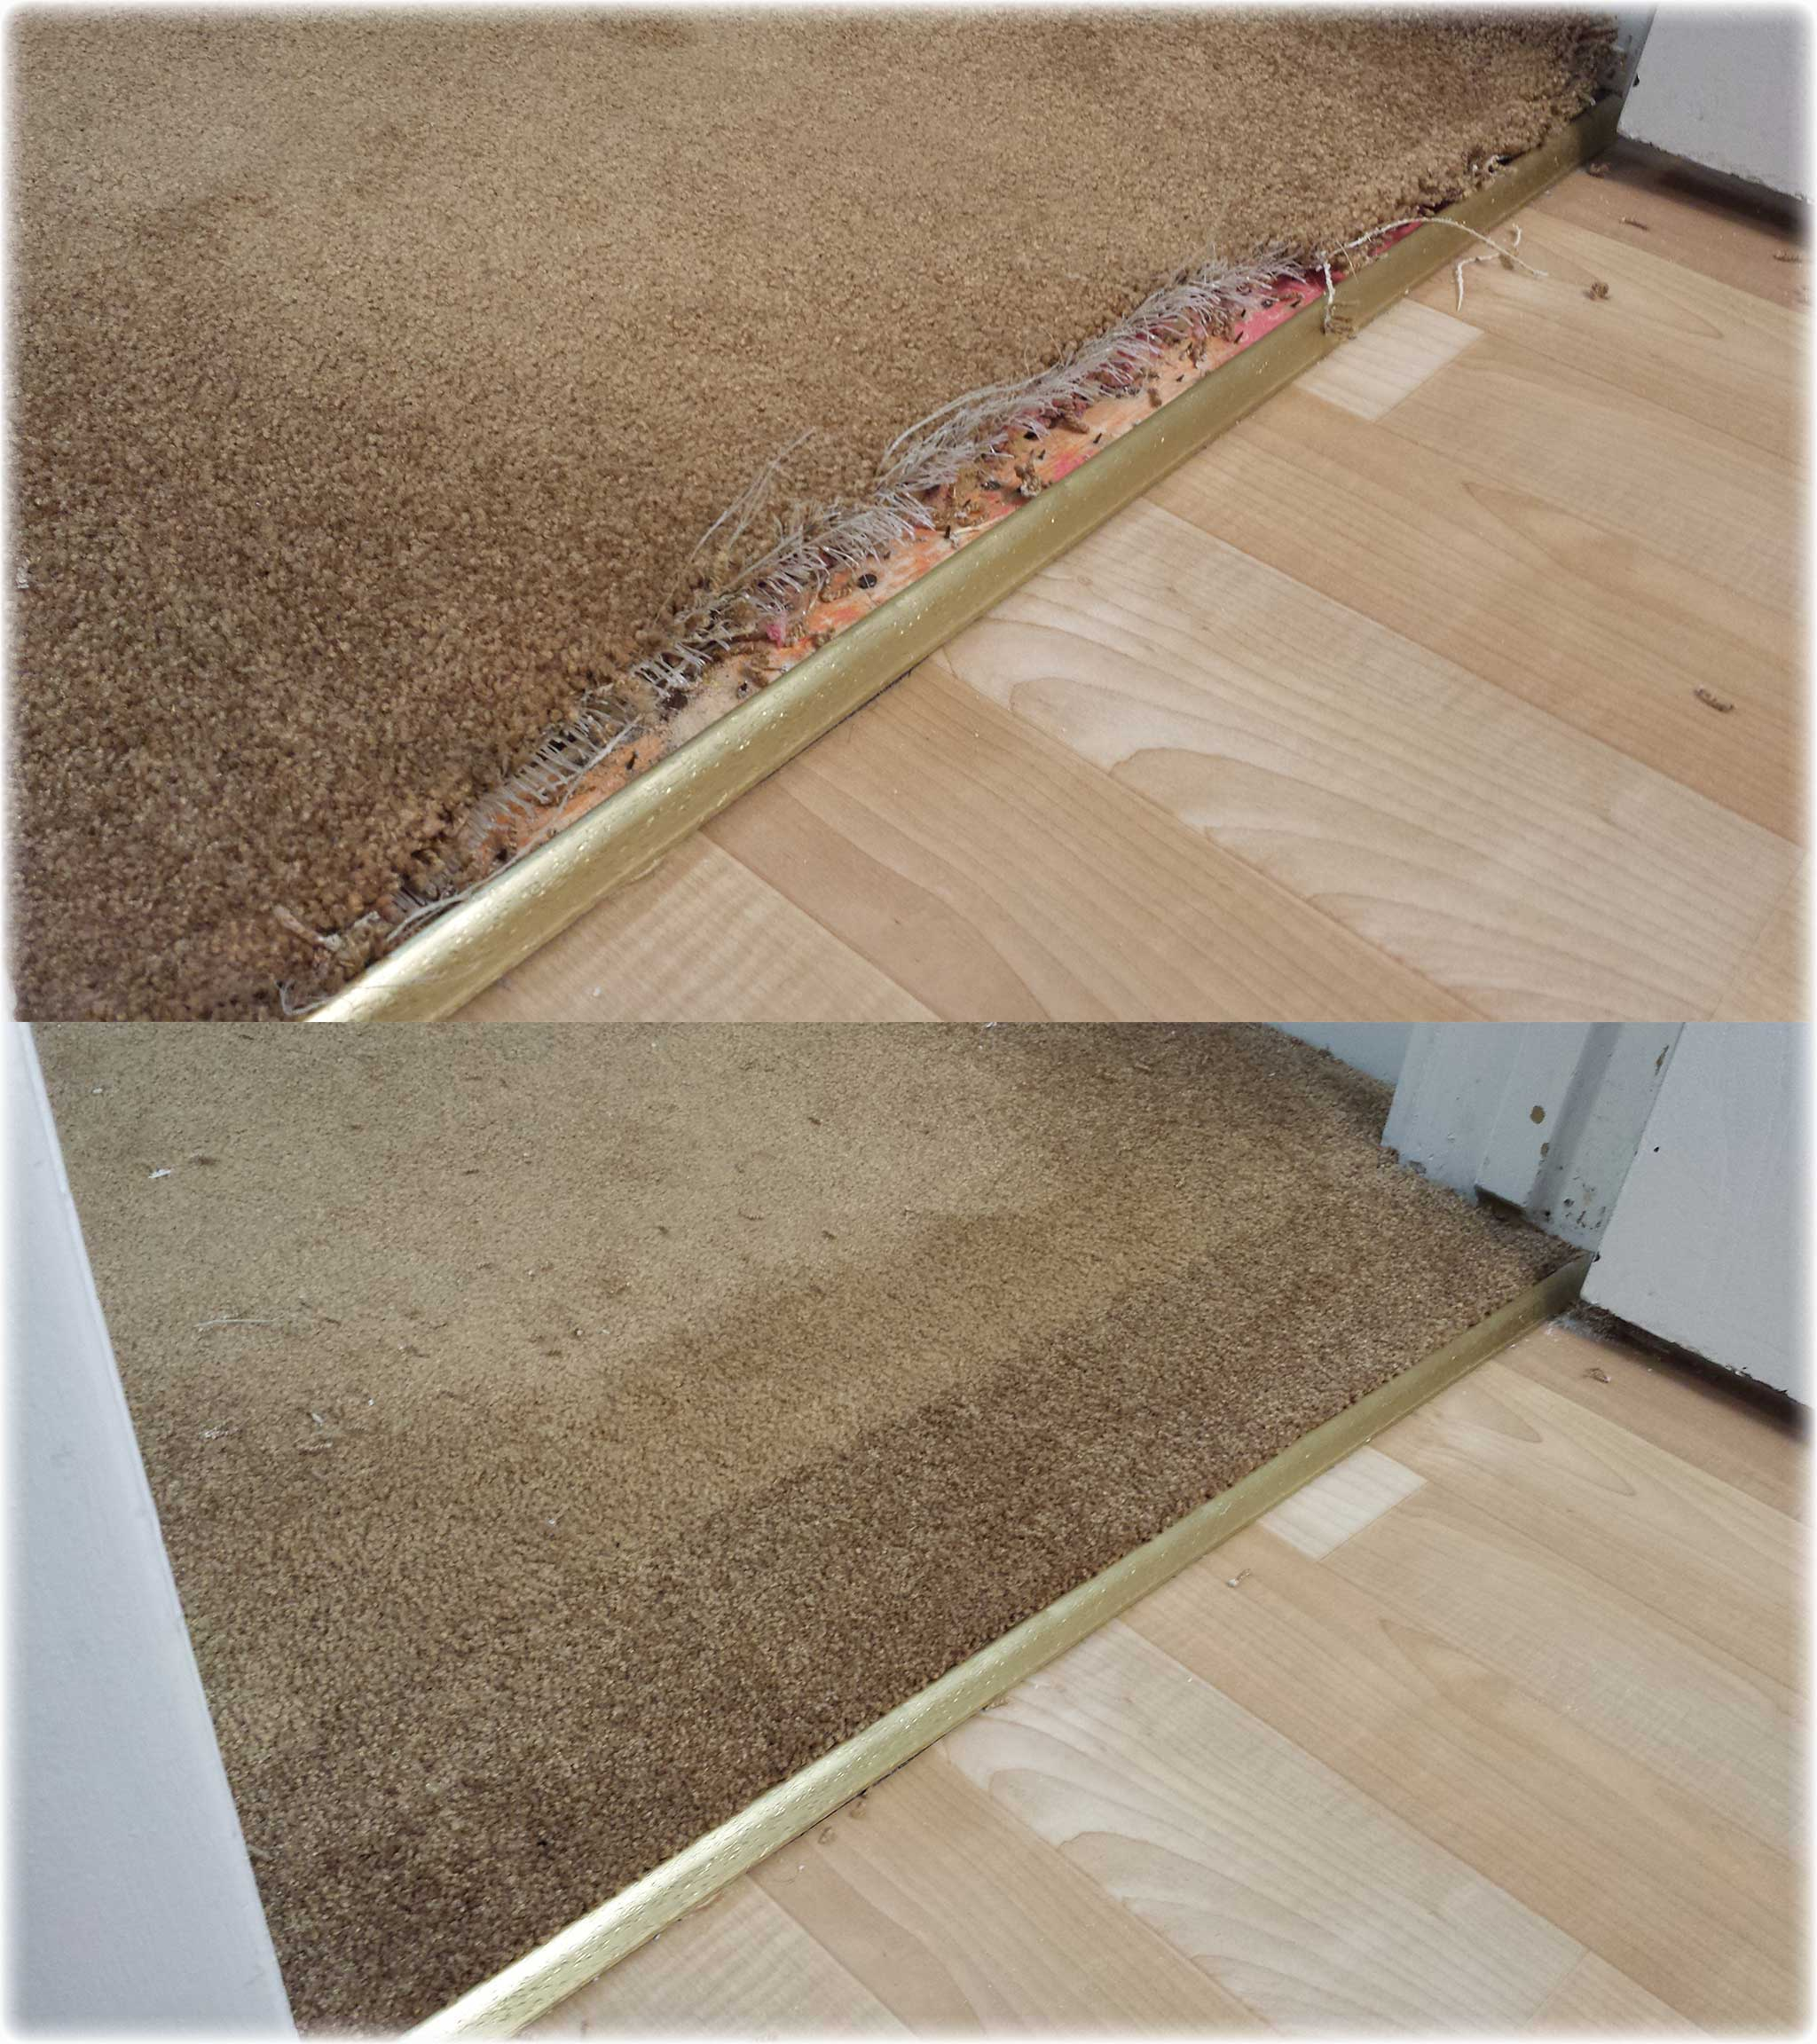 Gold Coast Flooring Gallery | carpet cleaning, repair ...